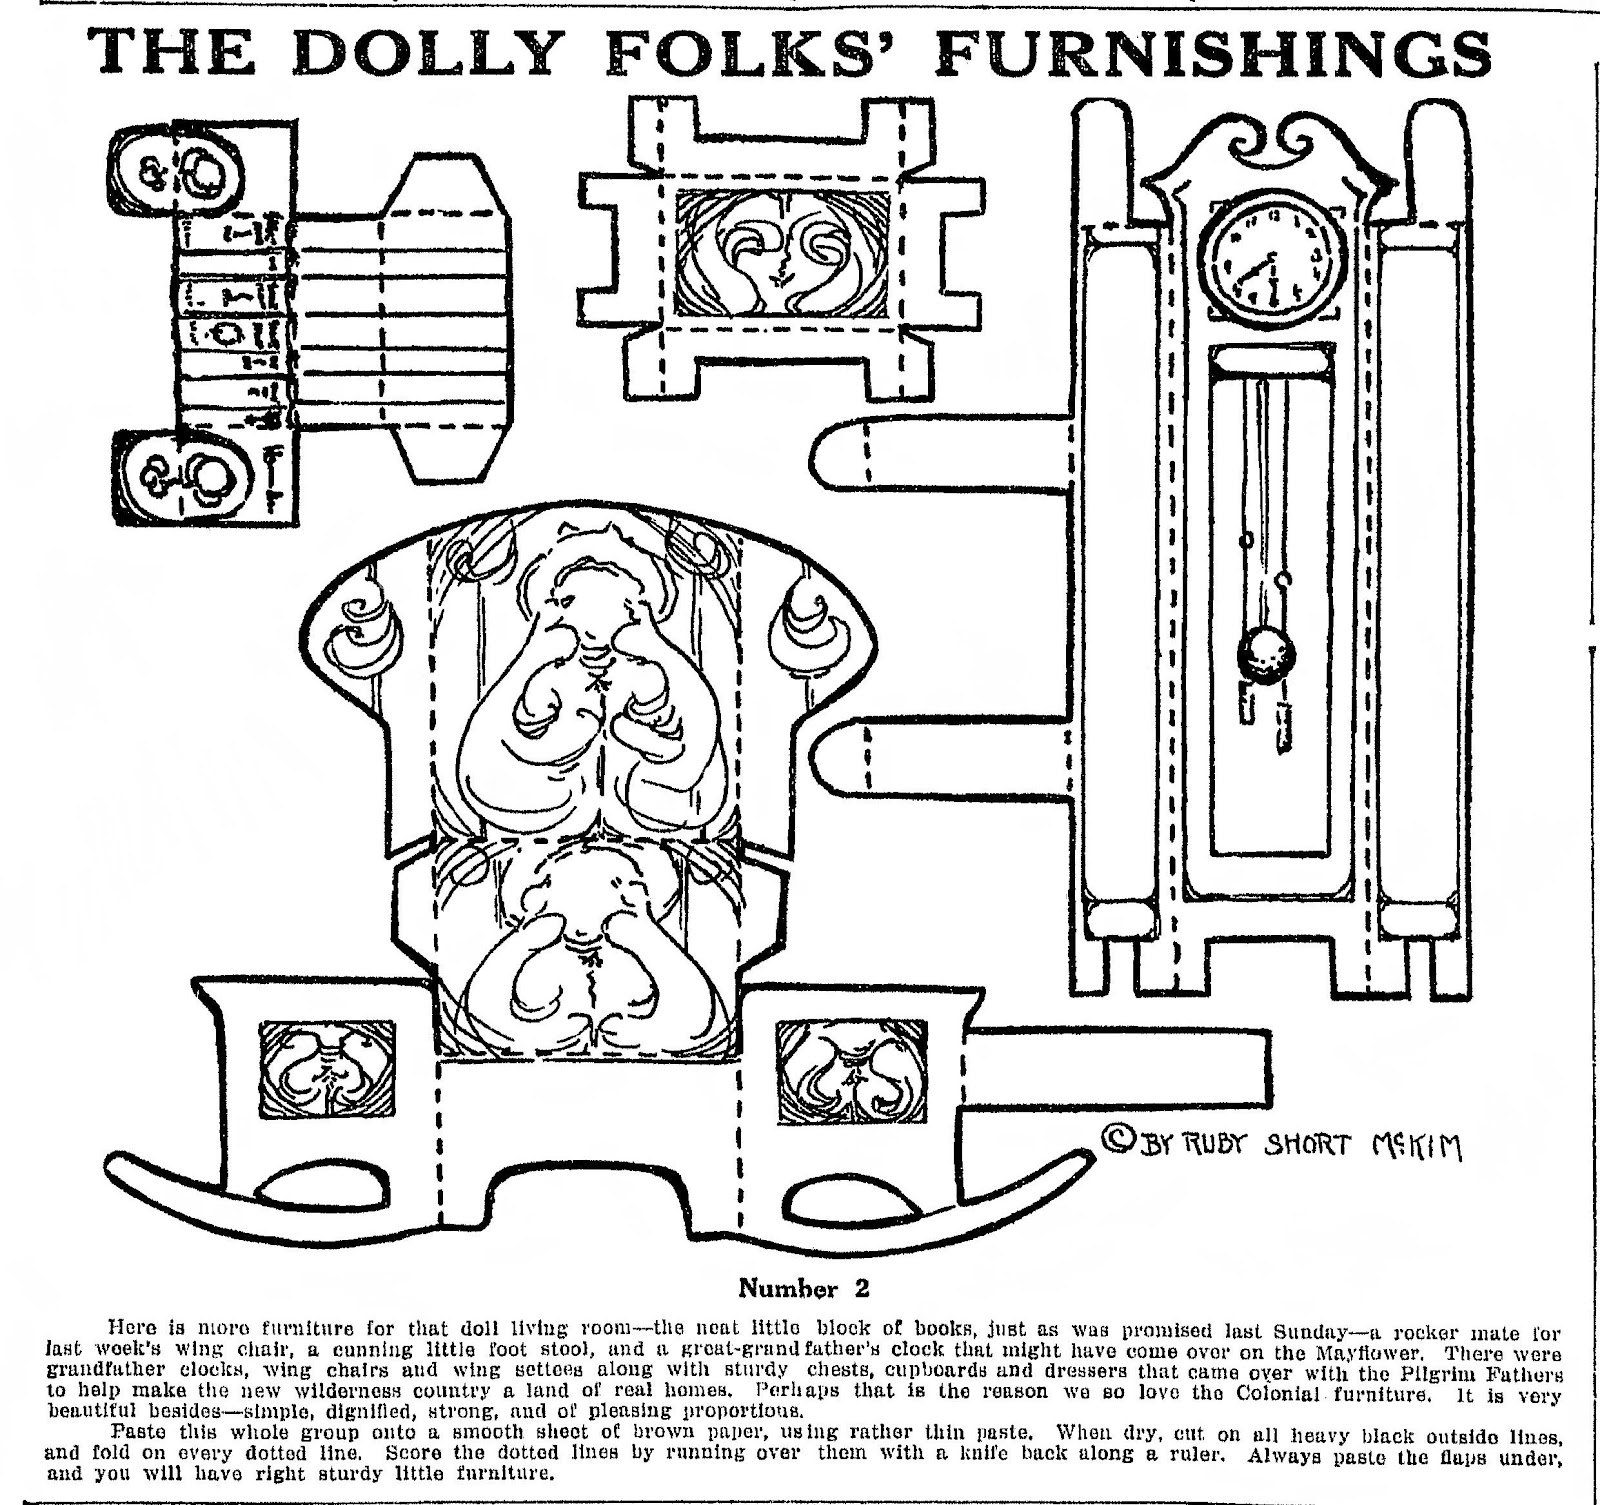 Mostly Paper Dolls Dolly Folks Furnishings